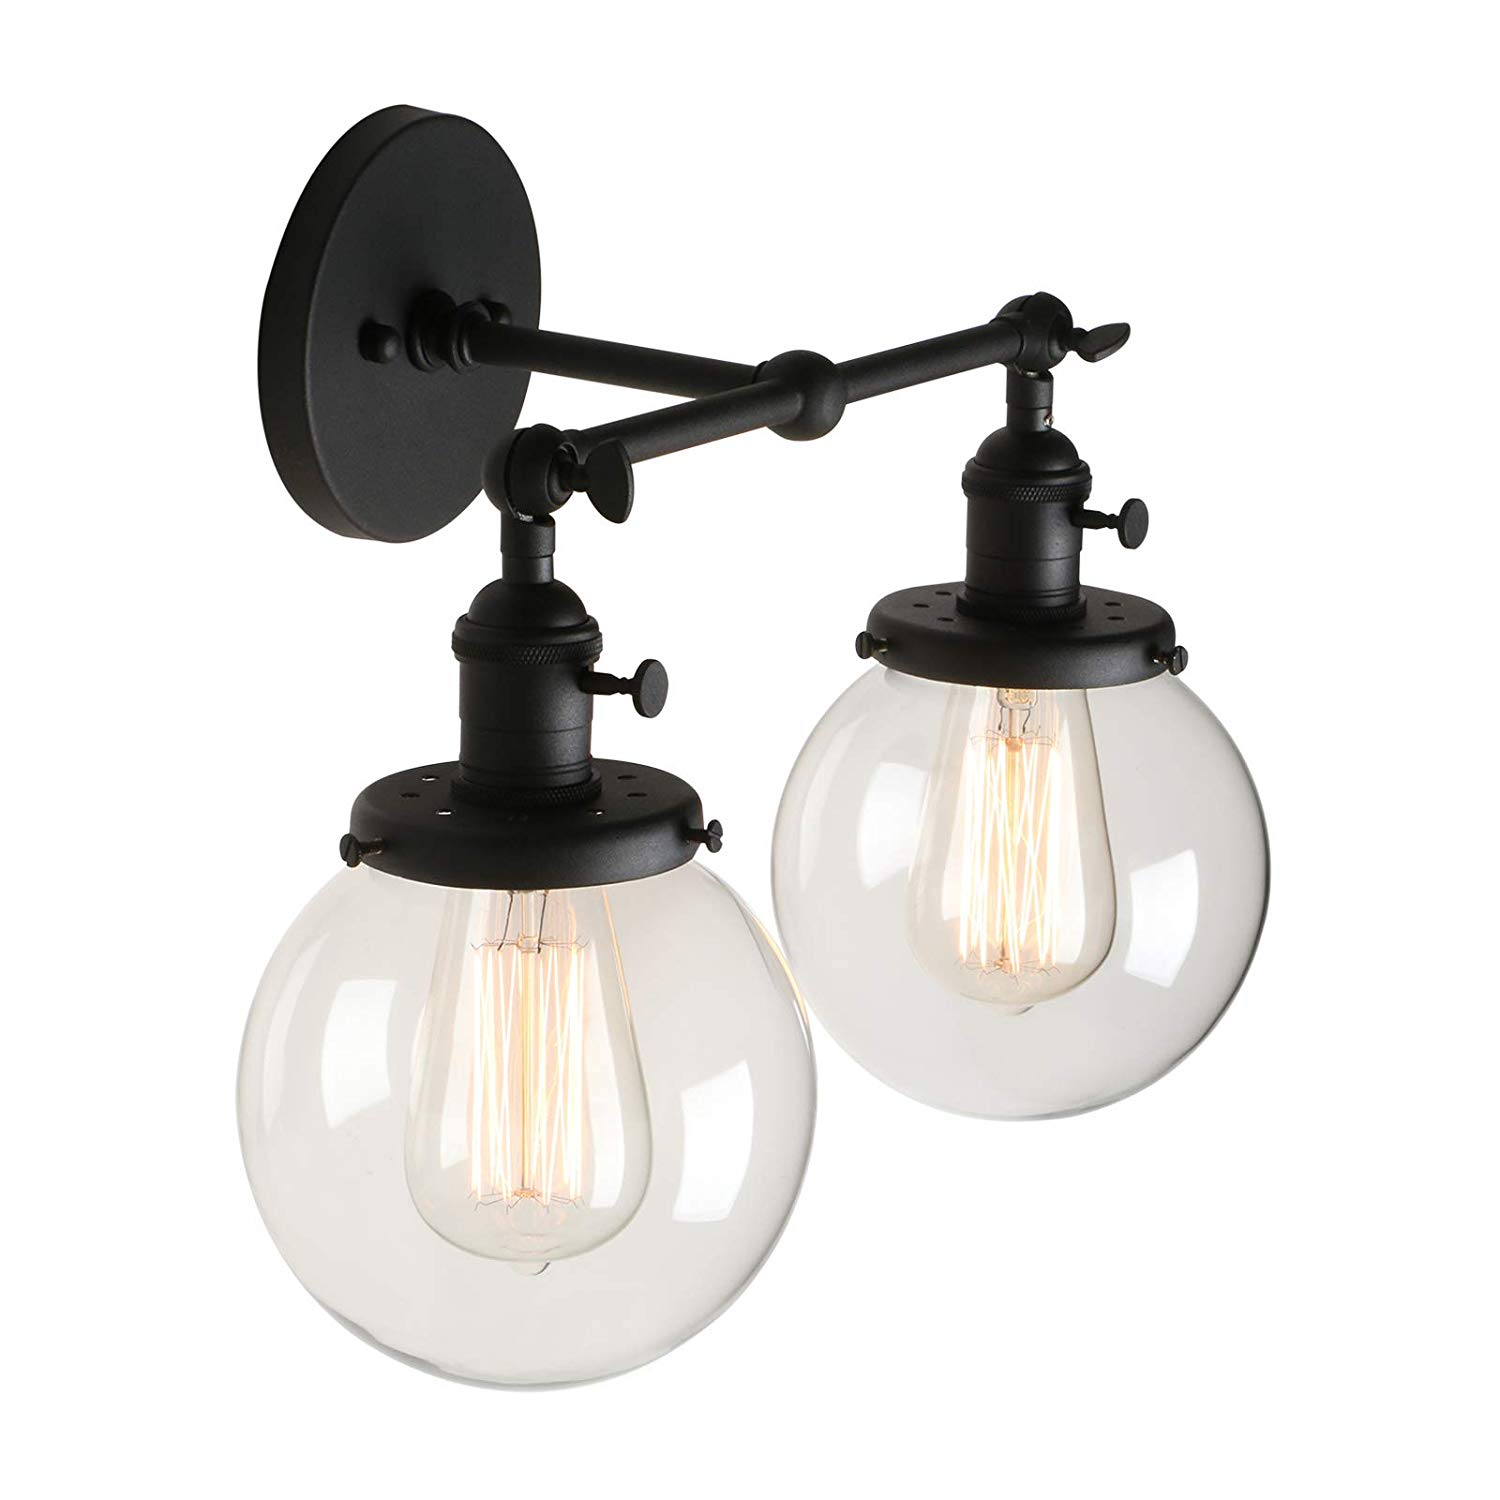 Get Quotations · Pathson Vintage 2 Light Wall Sconce With Globe Clear Glass  Shade, Black Industrial Vanity Light